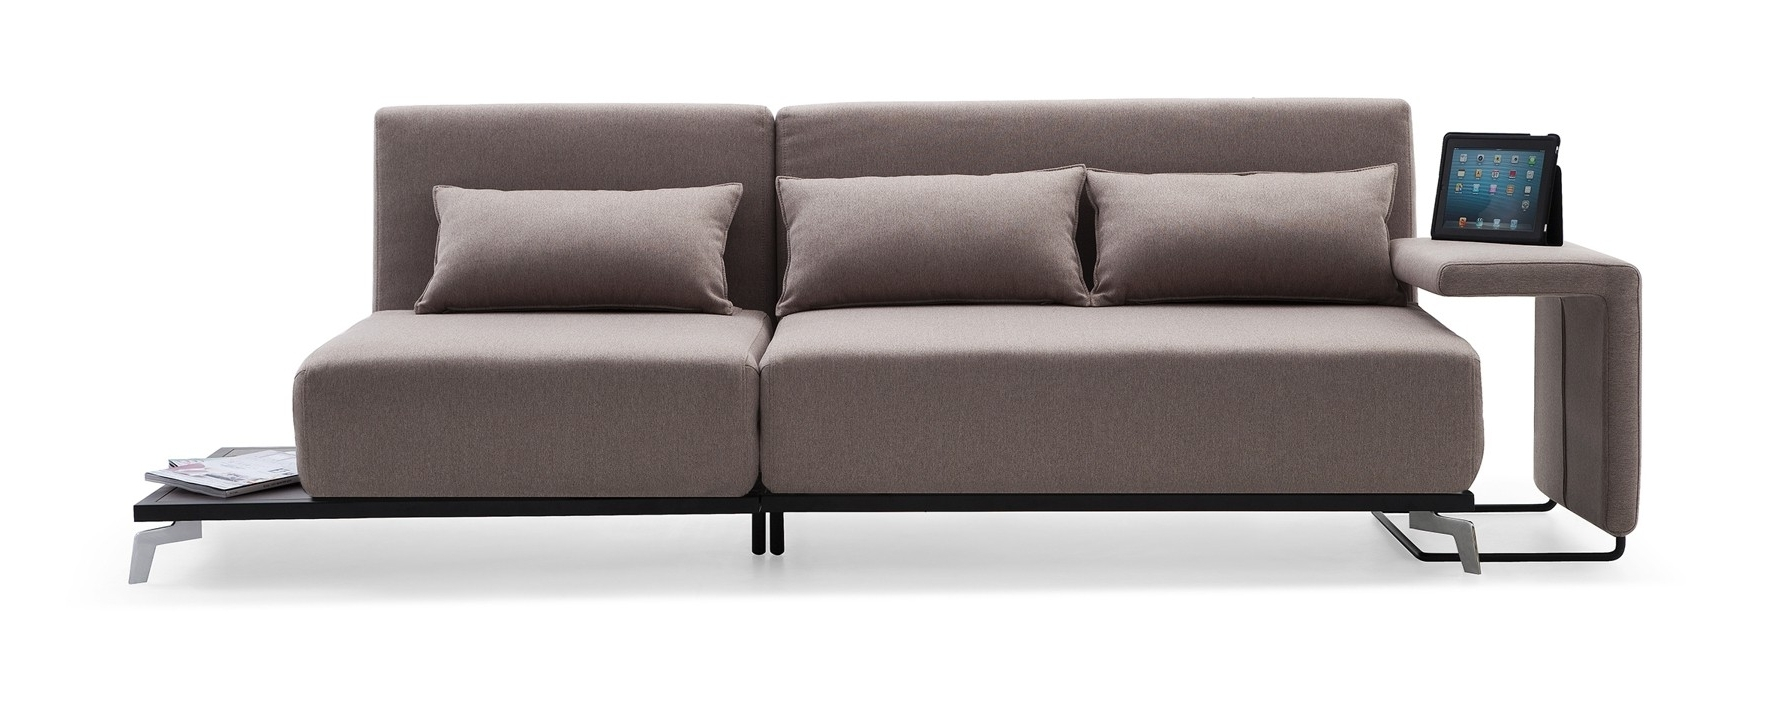 Recent Jh033 Modern Sofa Bed Intended For Contemporary Sofas And Chairs (View 15 of 20)